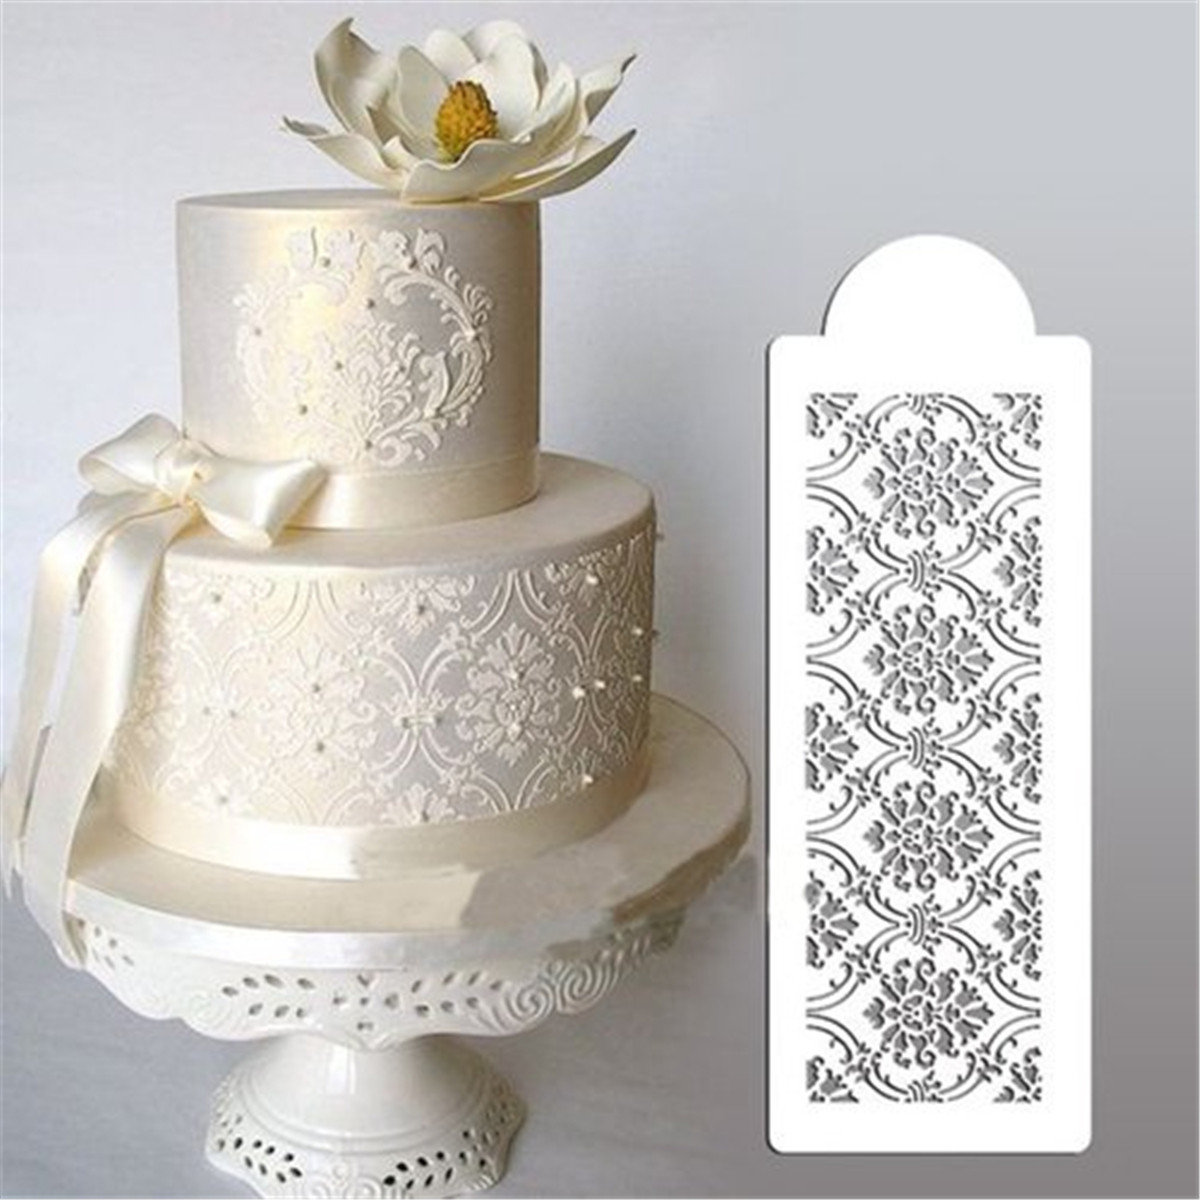 stenciled wedding cake design pochoirs dentelle moule d 233 cor p 226 te sucre fondant g 226 teau 20521